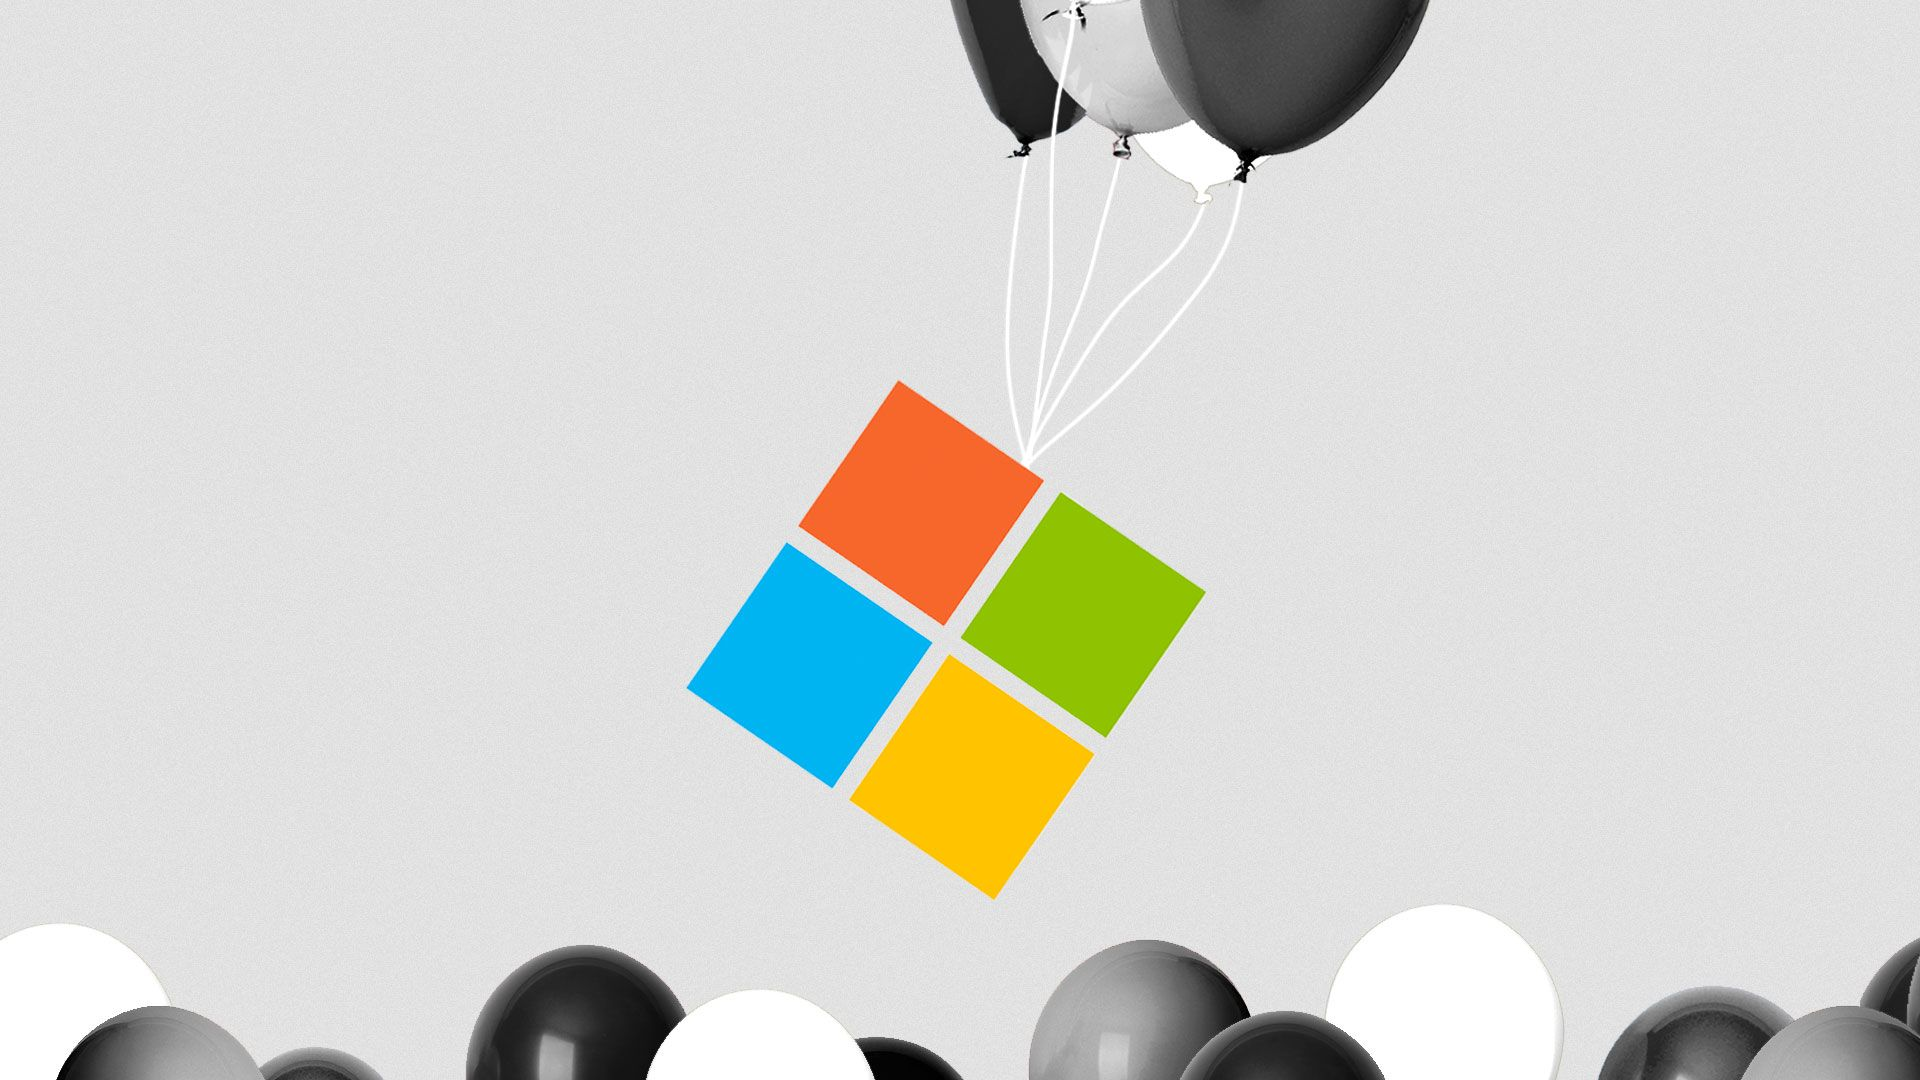 Illustration of balloons carrying the Microsoft logo up and away over other balloons